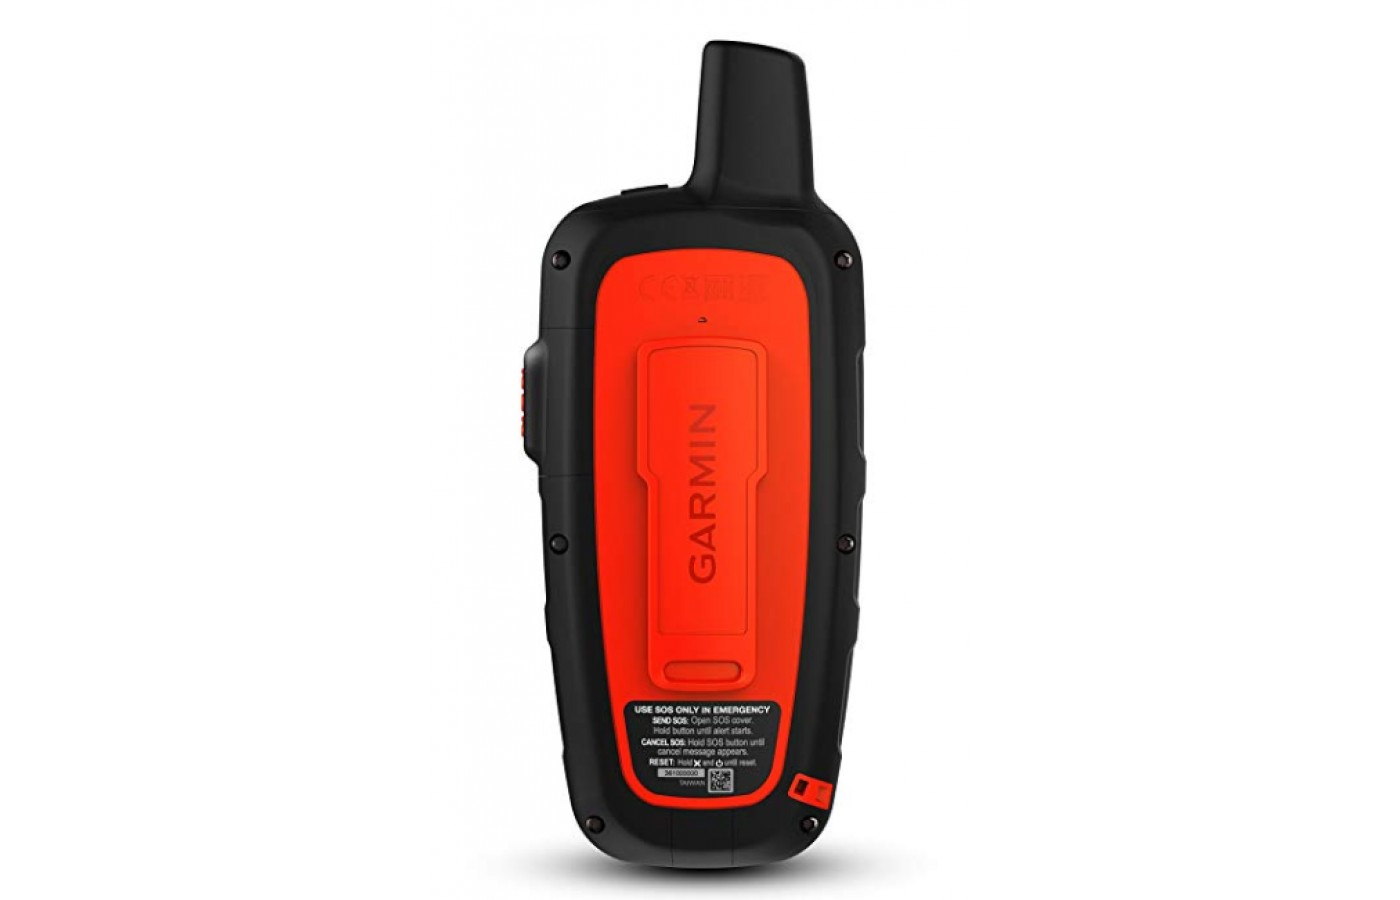 The Explorer + comes with an inbuilt USB rechargeable lithium battery.